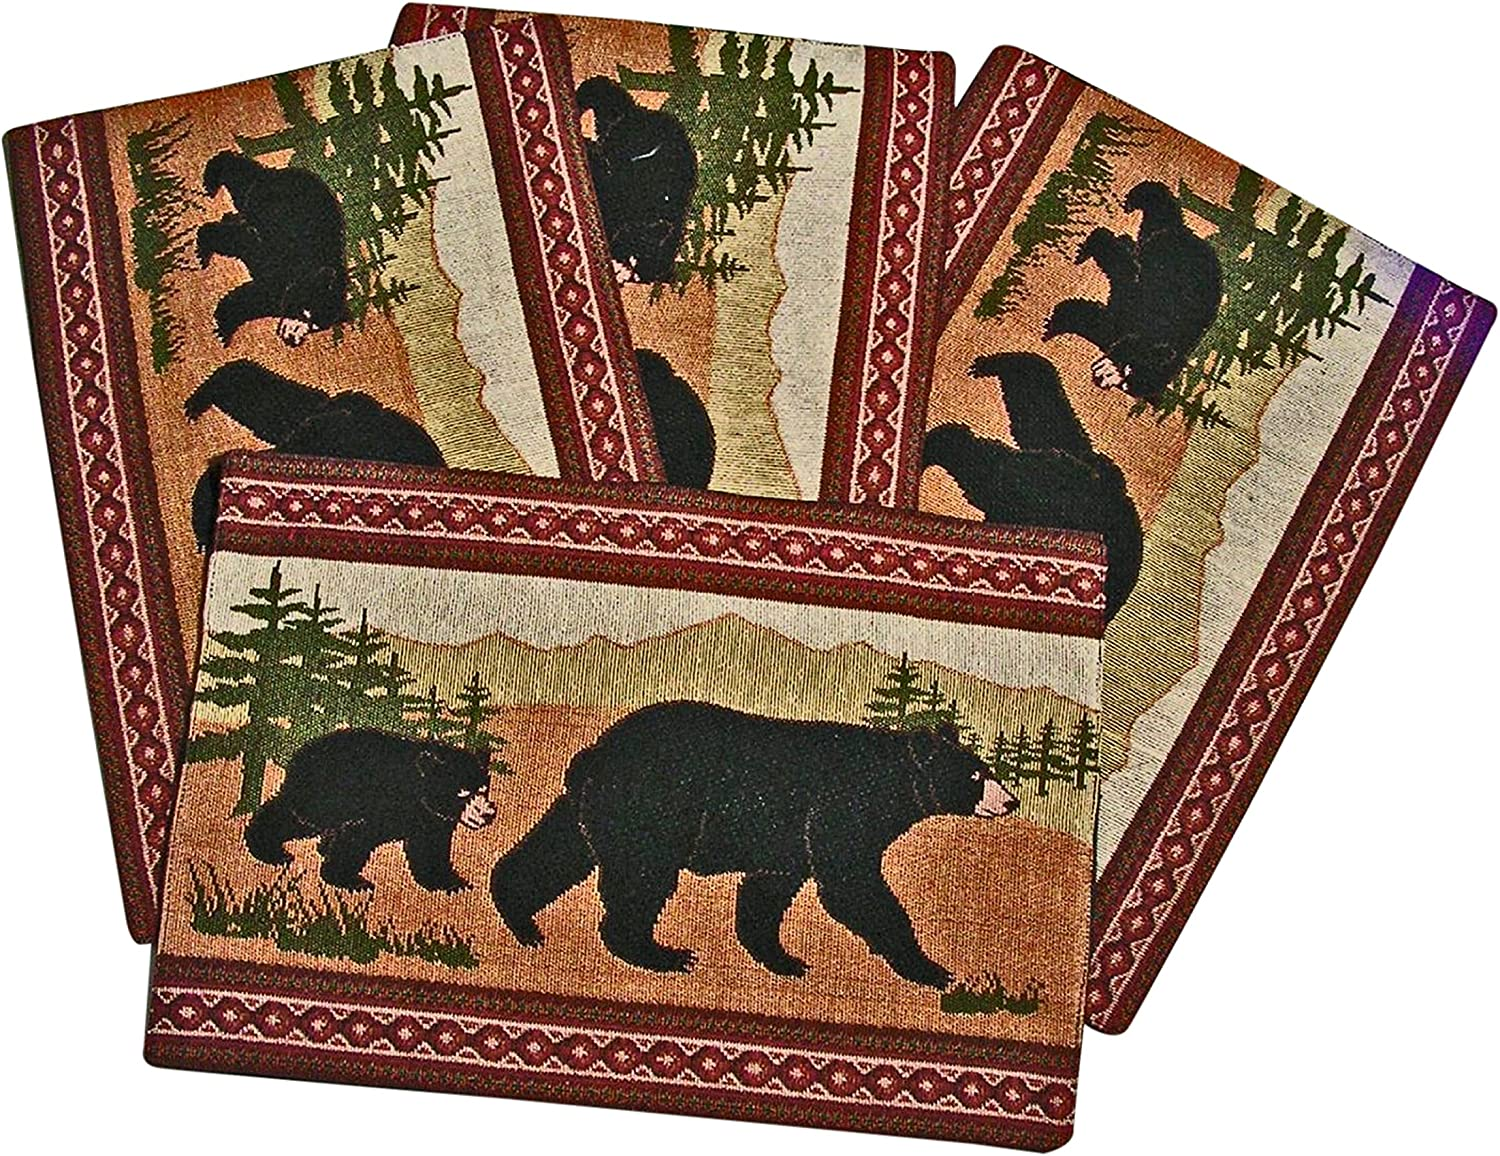 2 Fringed Bear Scene Woven Cotton Rustic Forest Country Cabin Placemats 13x19